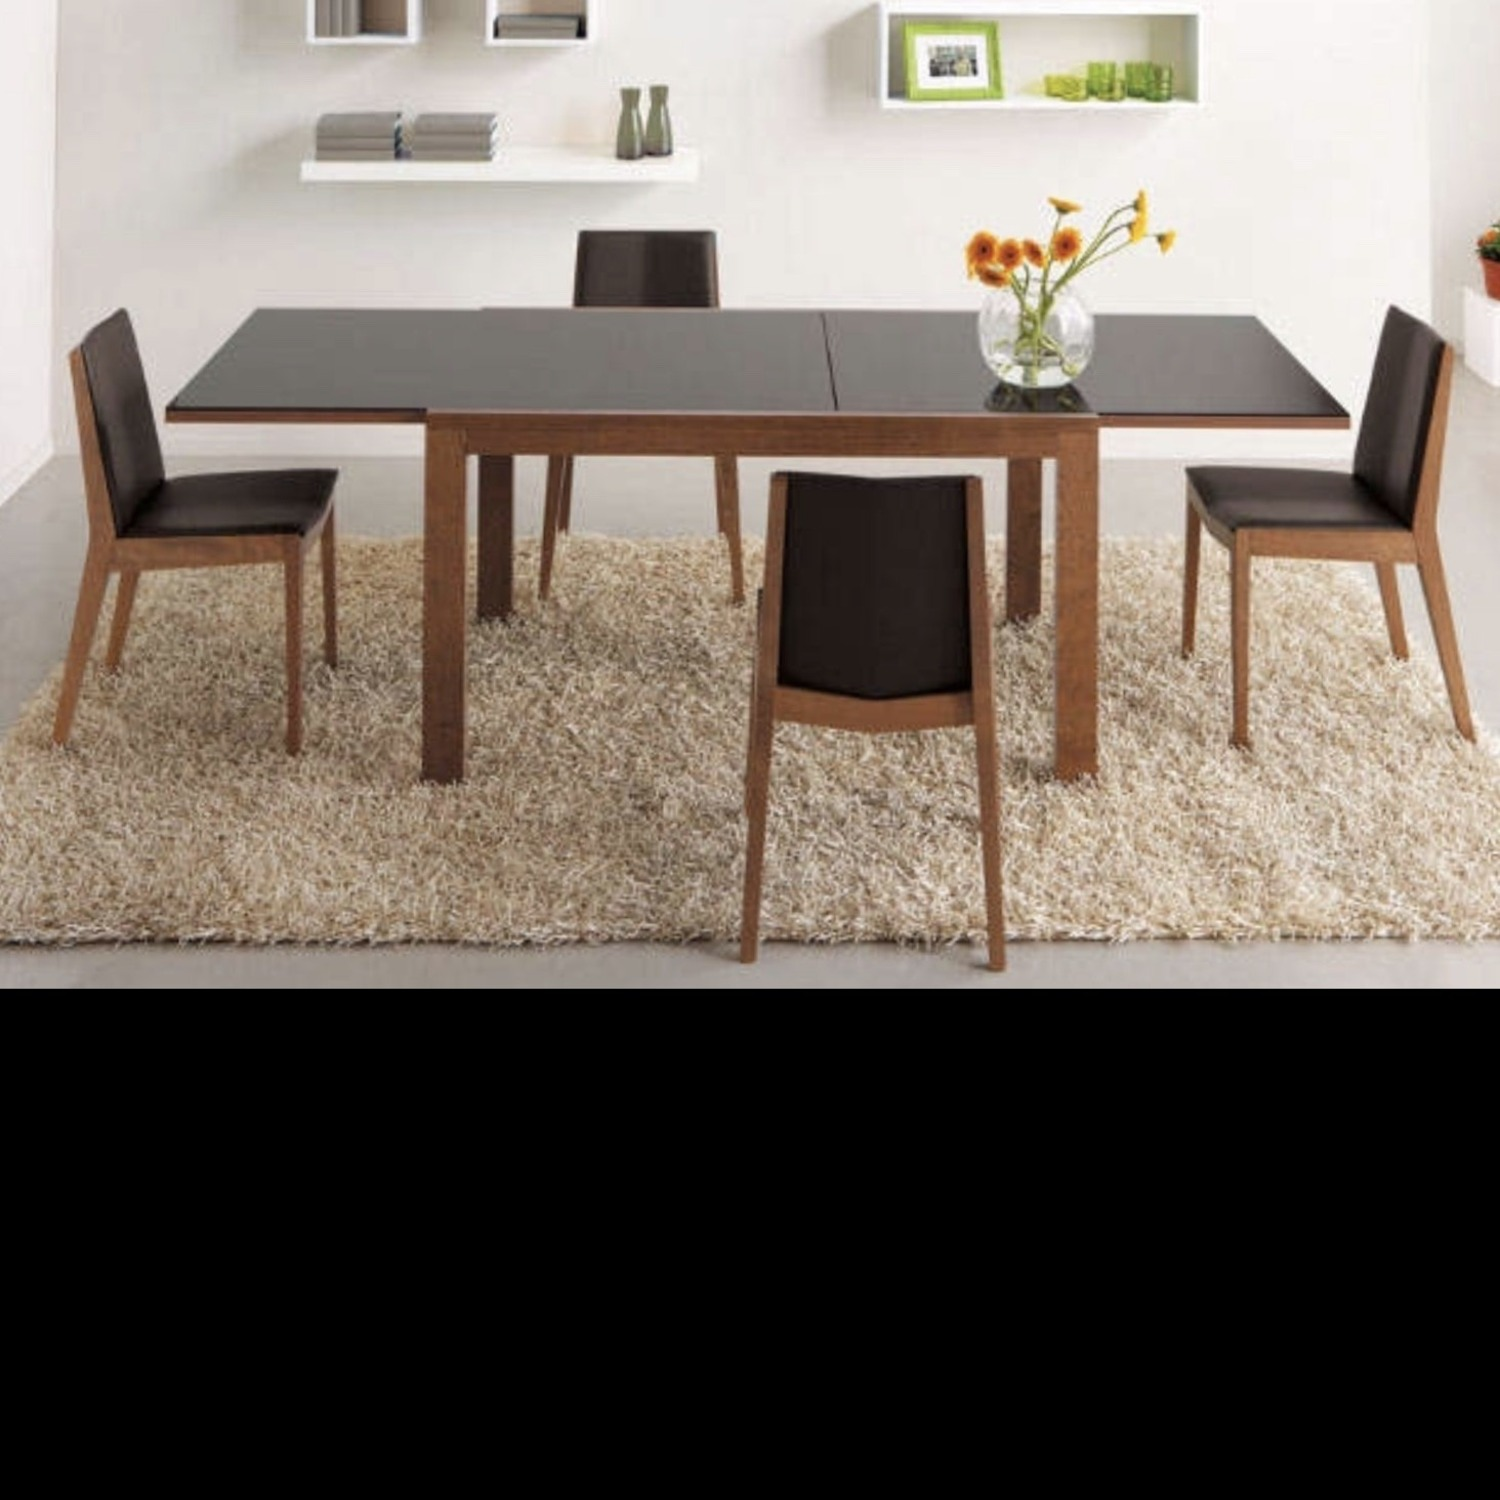 Calligaris Extendable Dining Table - image-2